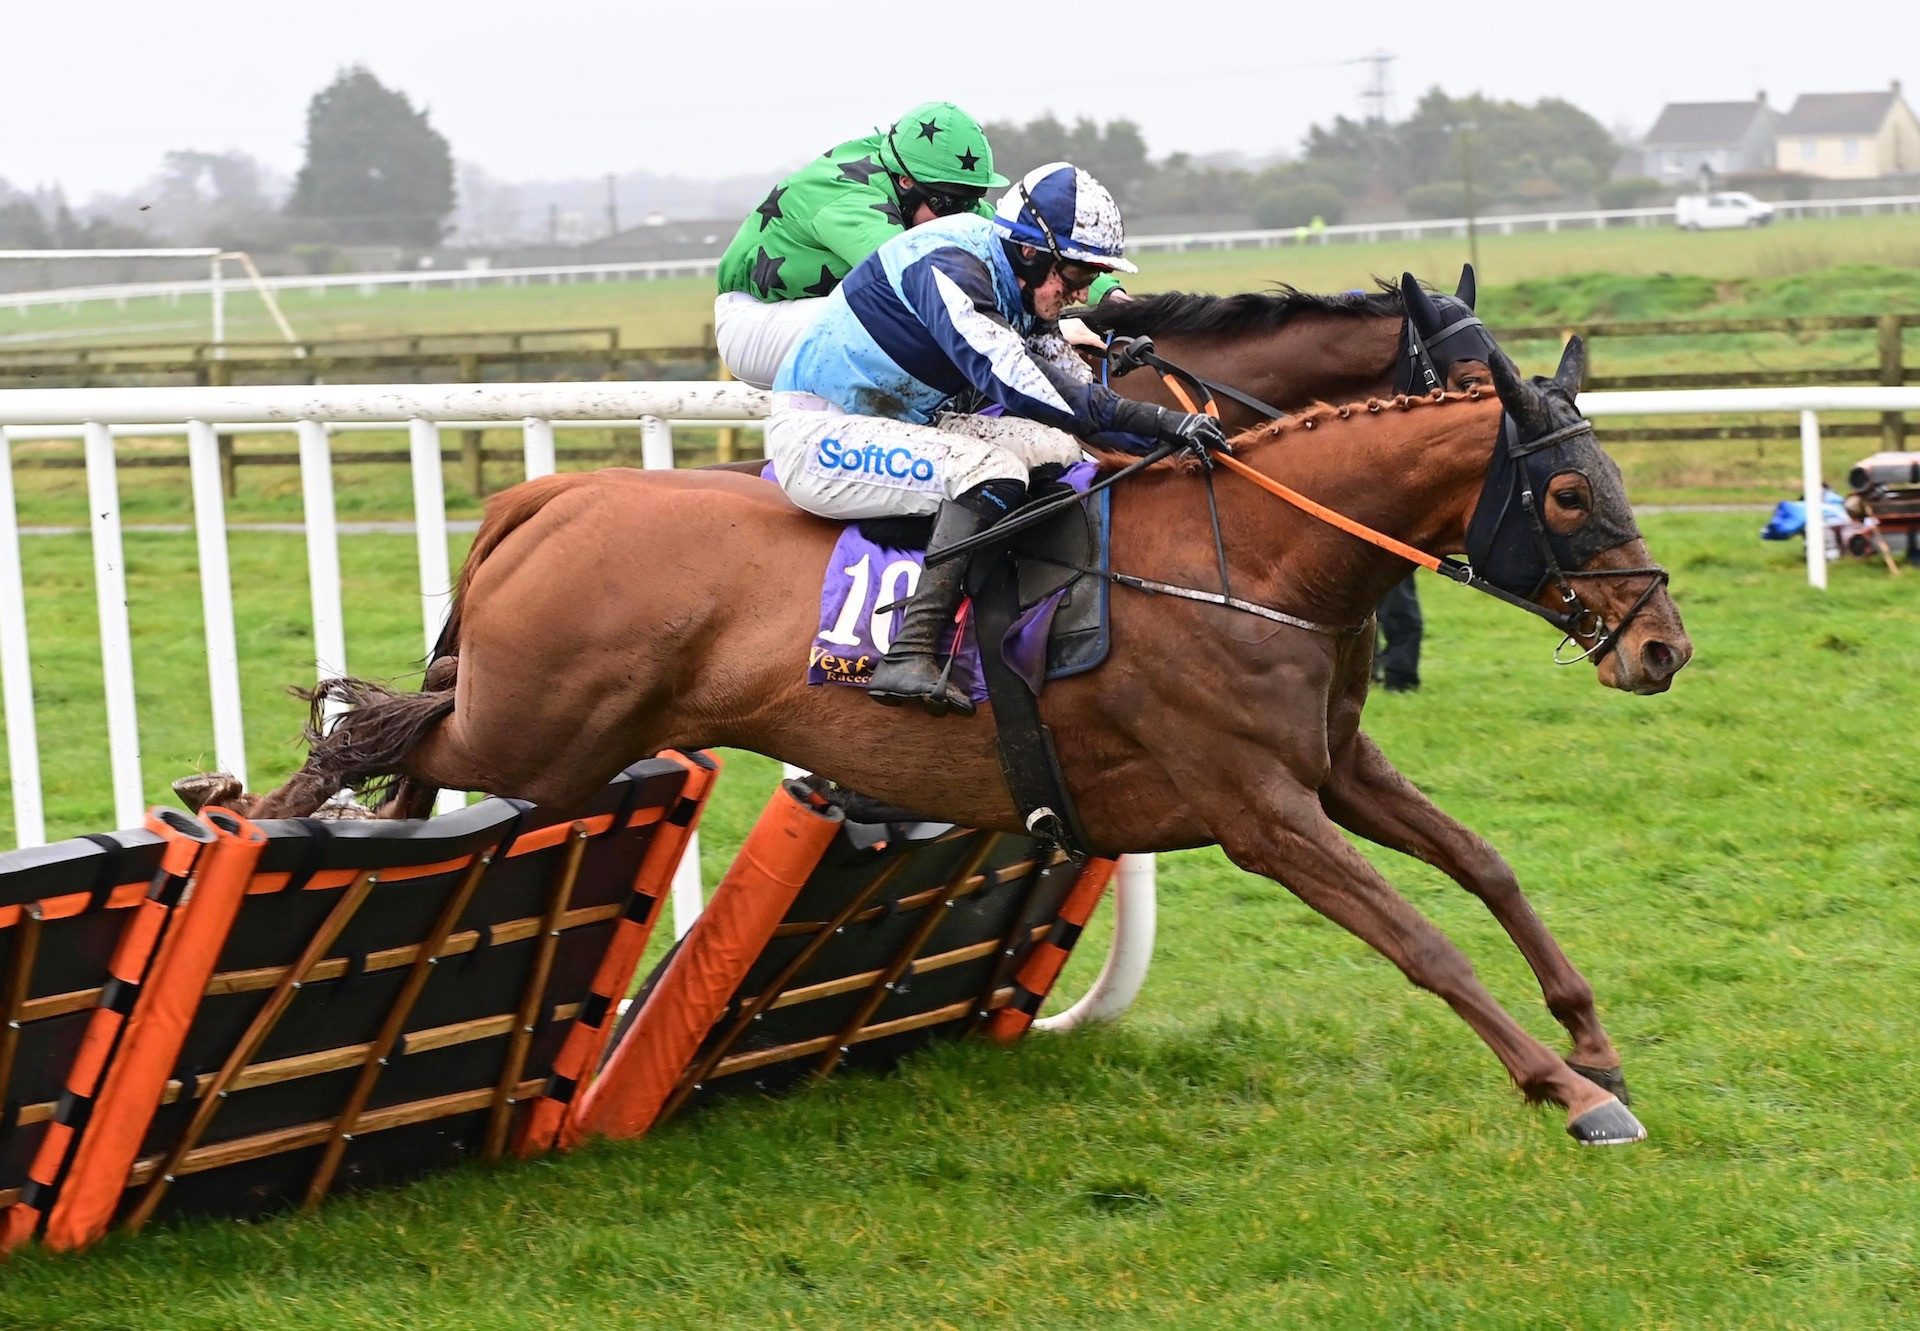 Socially Distant (Mahler) Wins The Mares Maiden Hurdle At Wexford